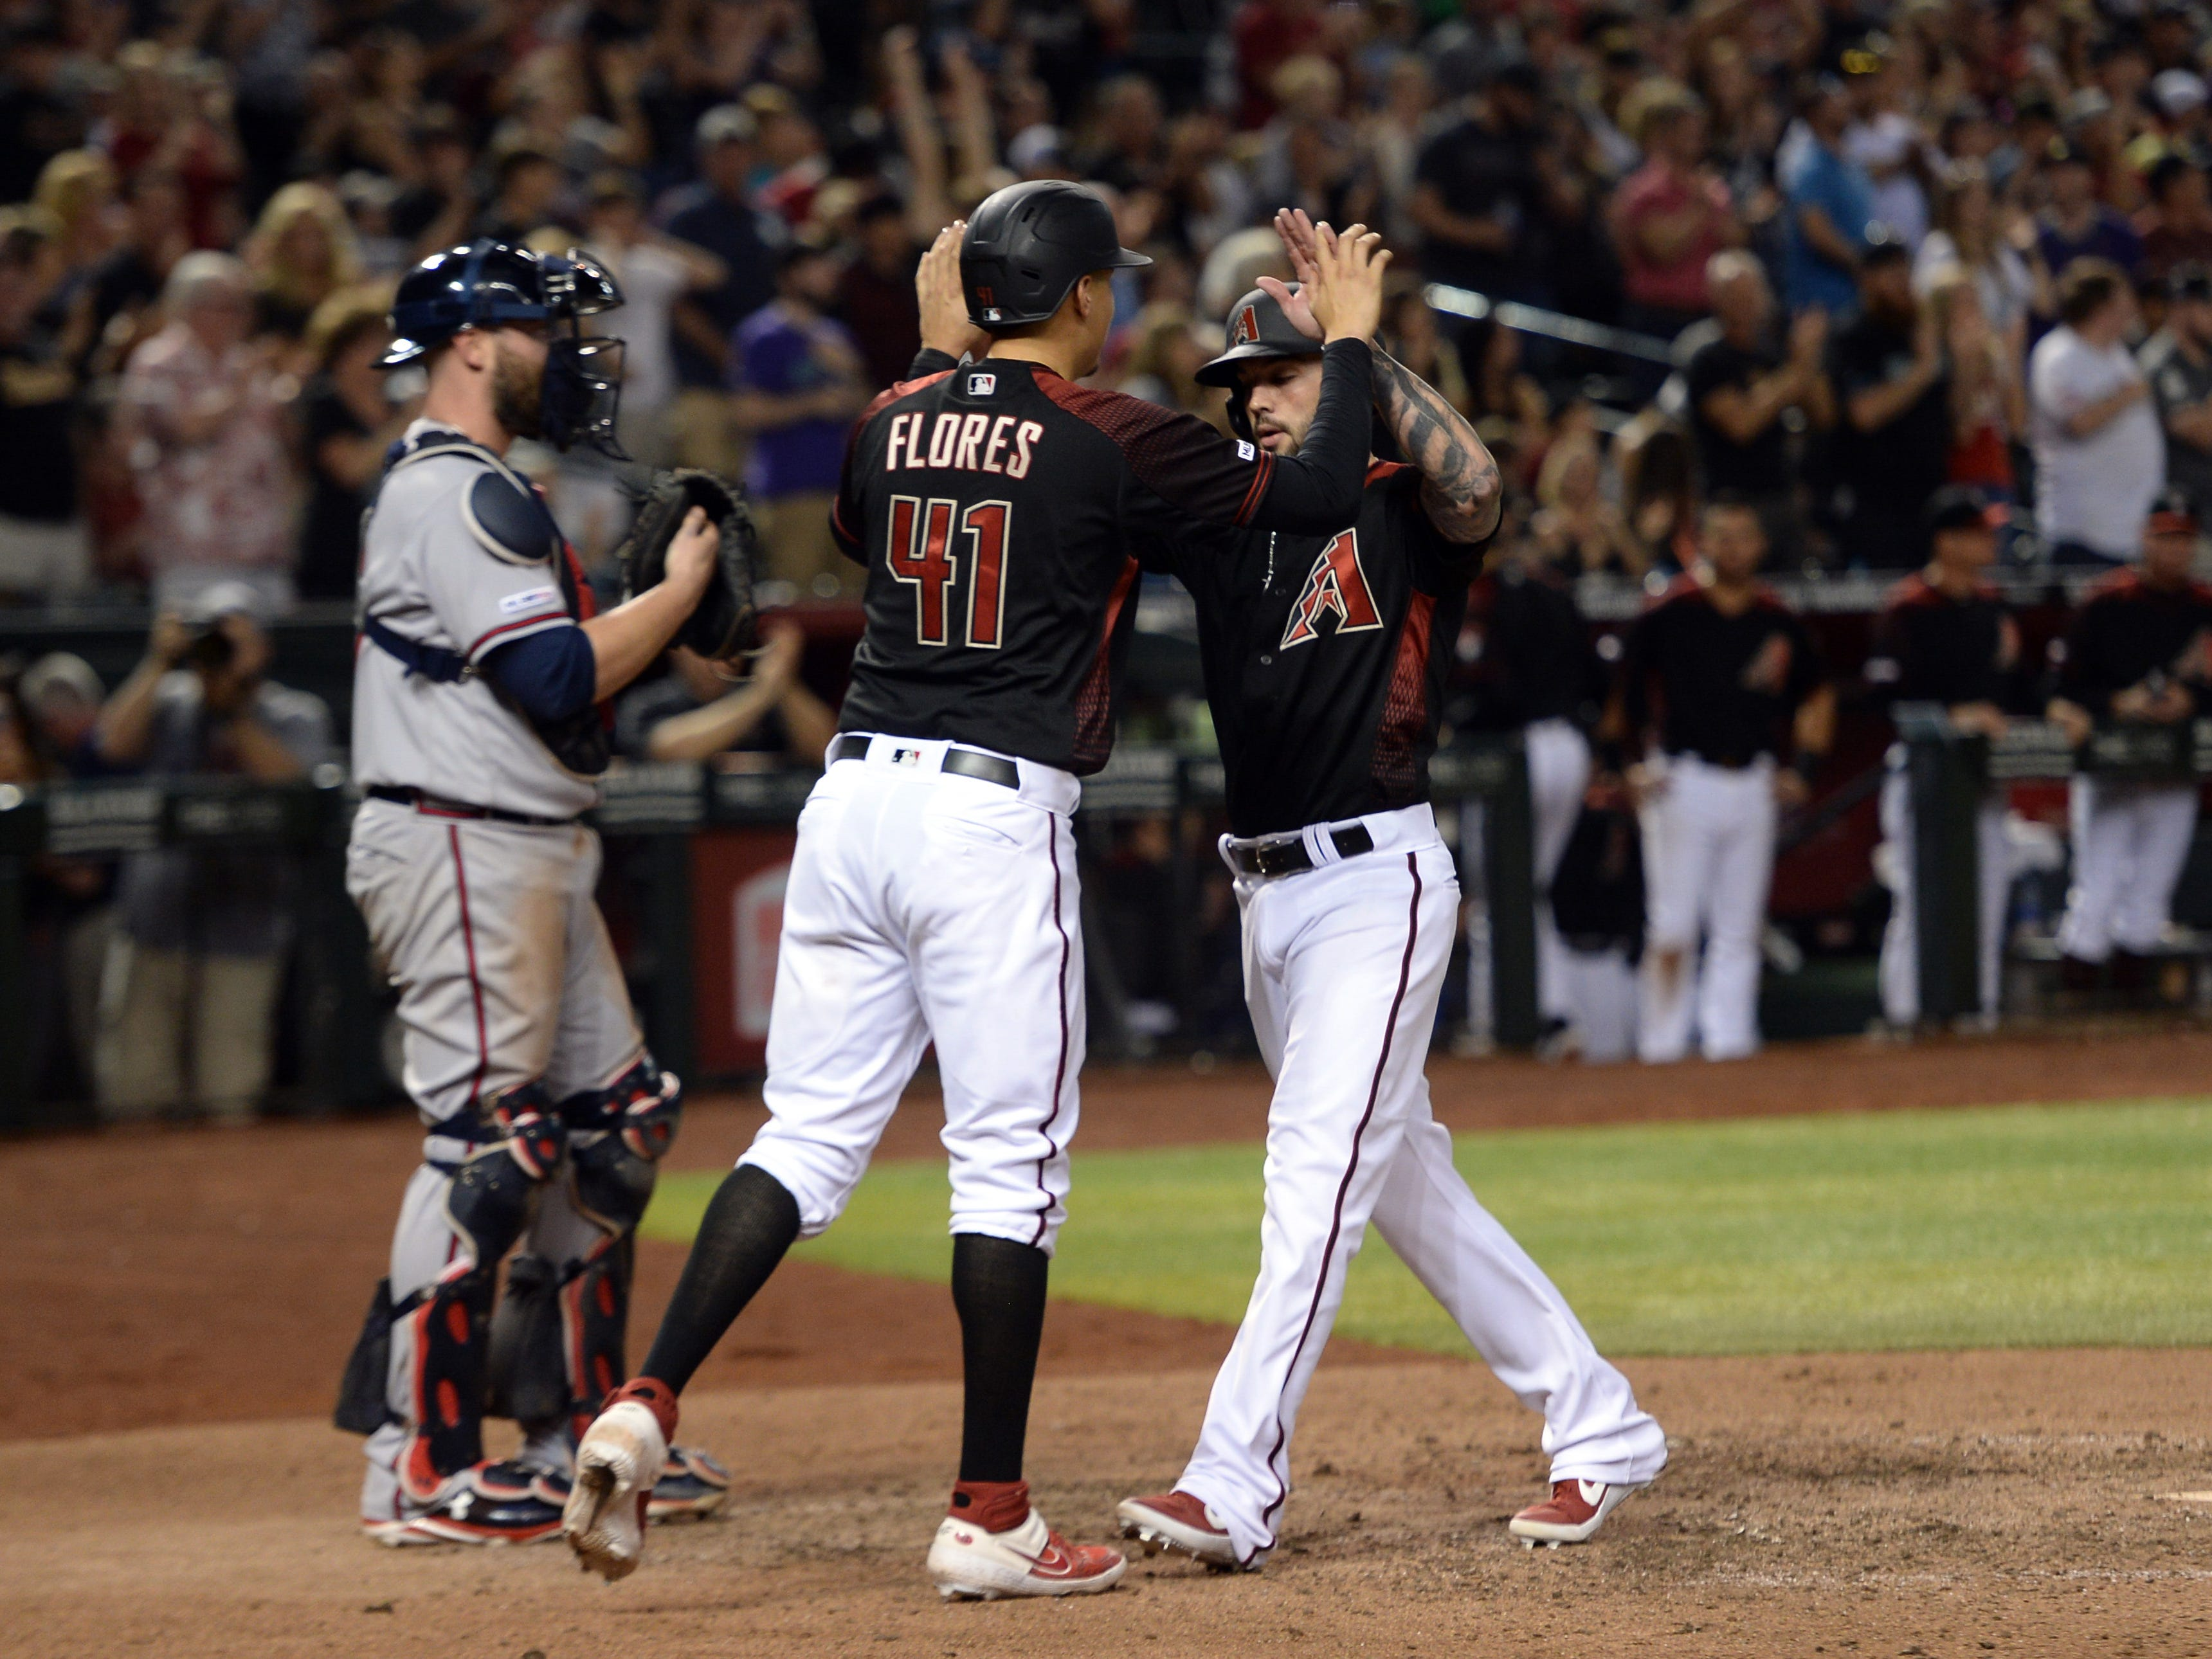 May 11, 2019; Phoenix, AZ, USA; Arizona Diamondbacks third baseman Wilmer Flores (41) and catcher Blake Swihart (19) celebrate at home plate on a two run home run by Swihart against the Atlanta Braves during the eighth inning at Chase Field.